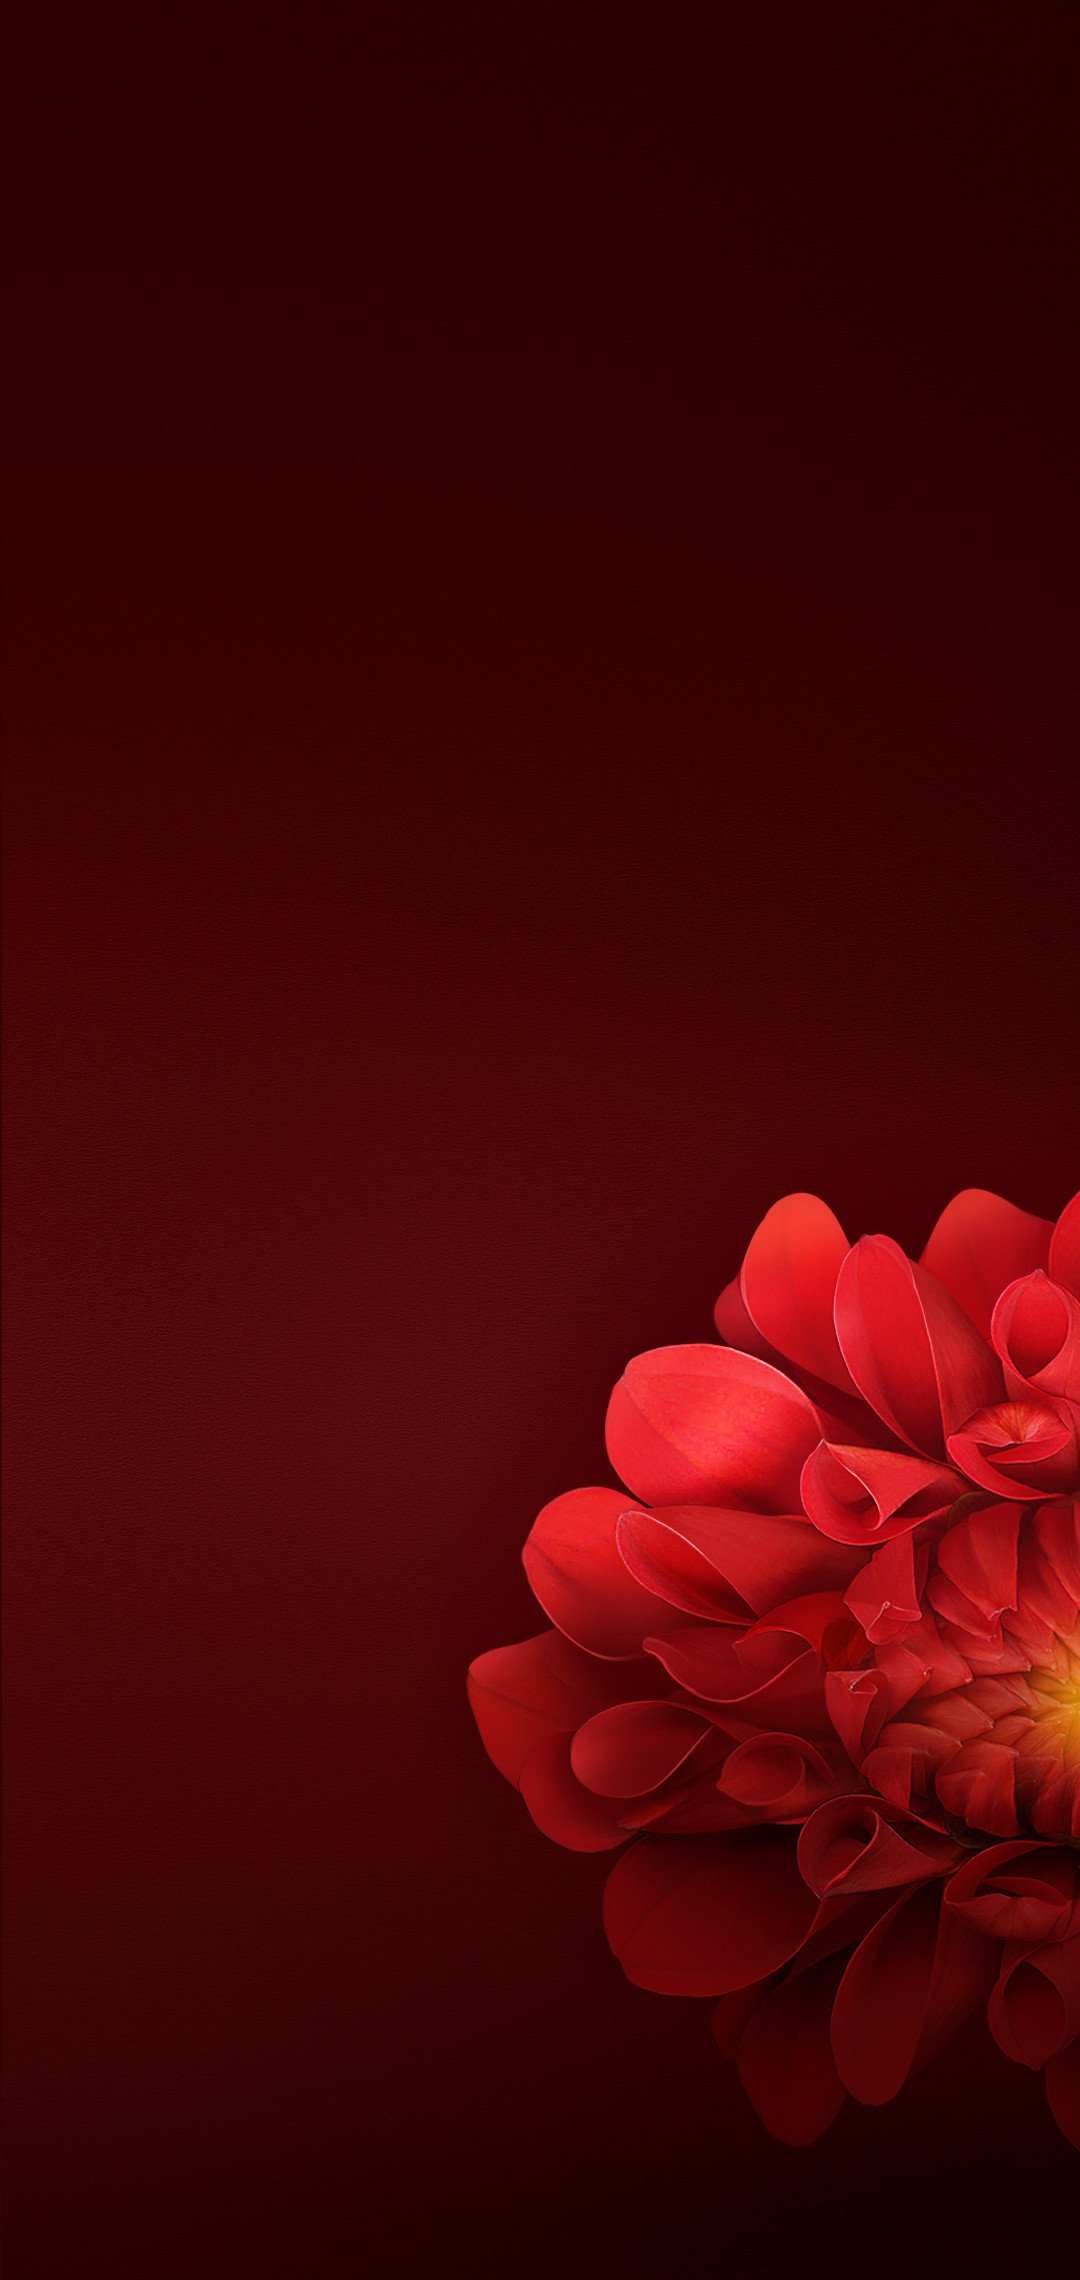 download oppo r15 stock wallpapers (updated) | droidviews